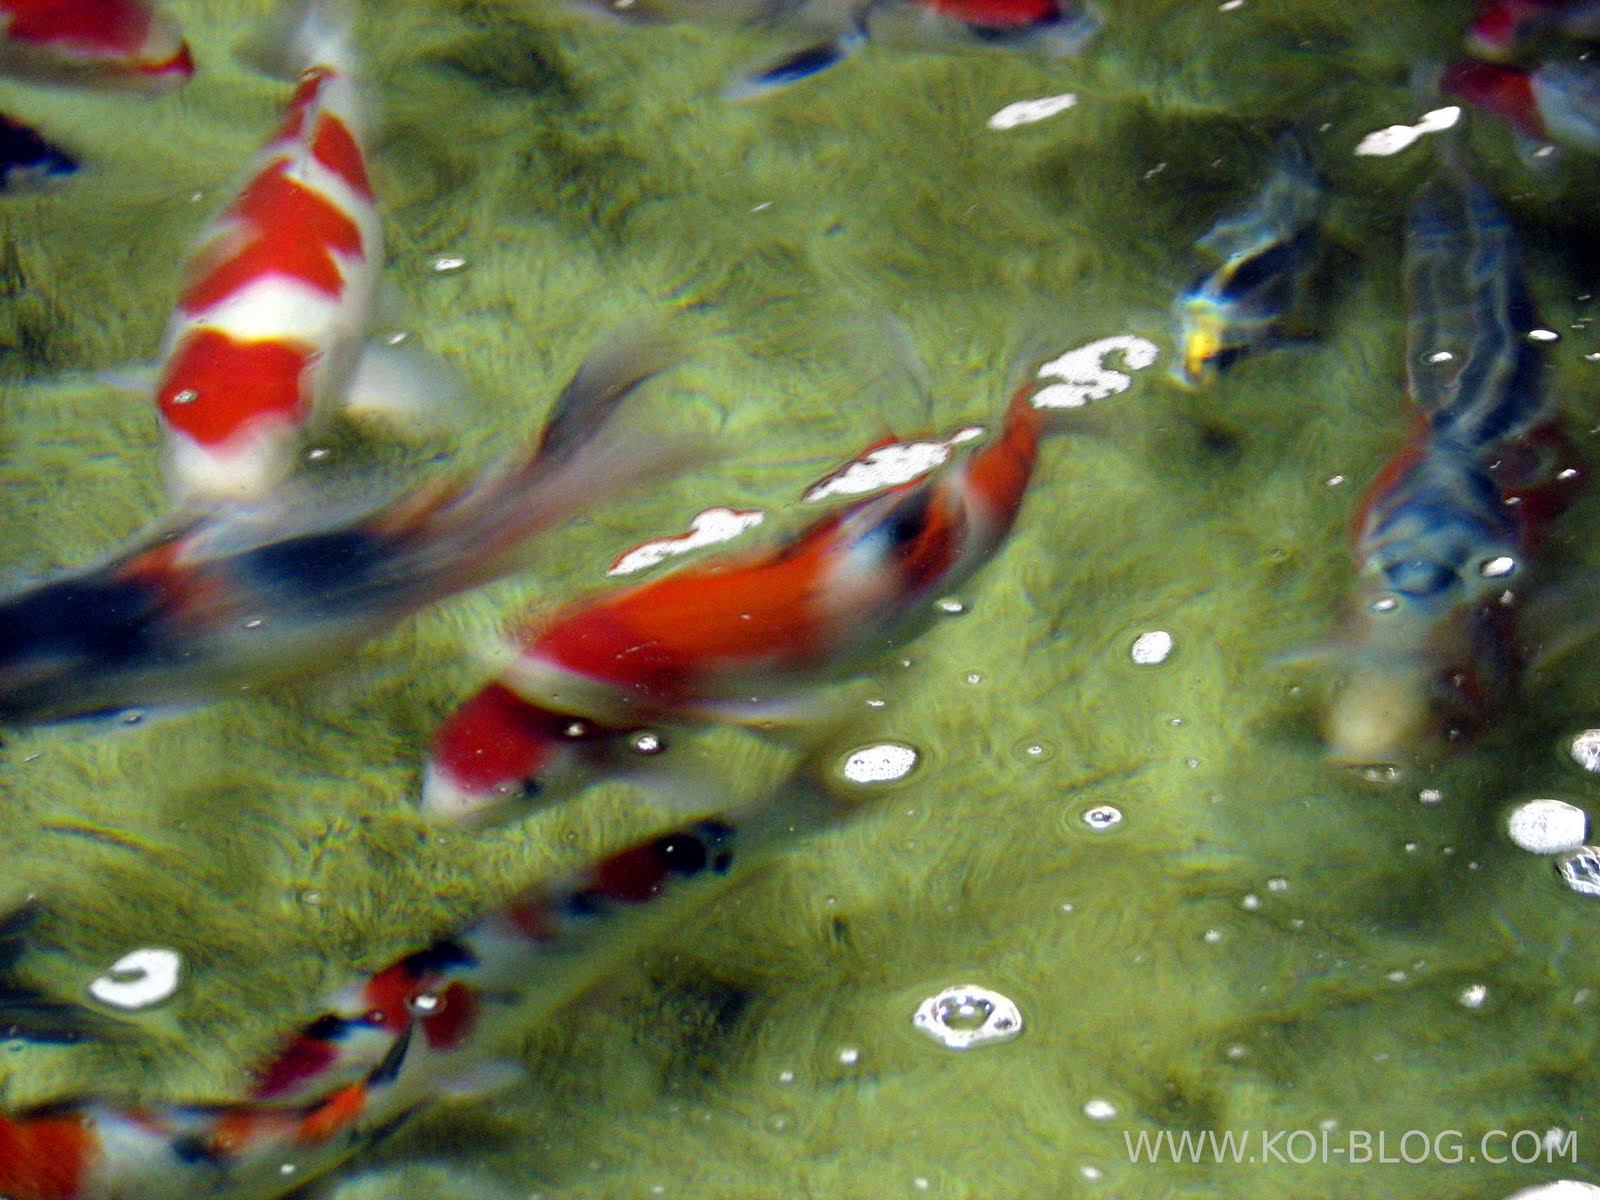 Koi blog koi fish varieties for Koi fish varieties